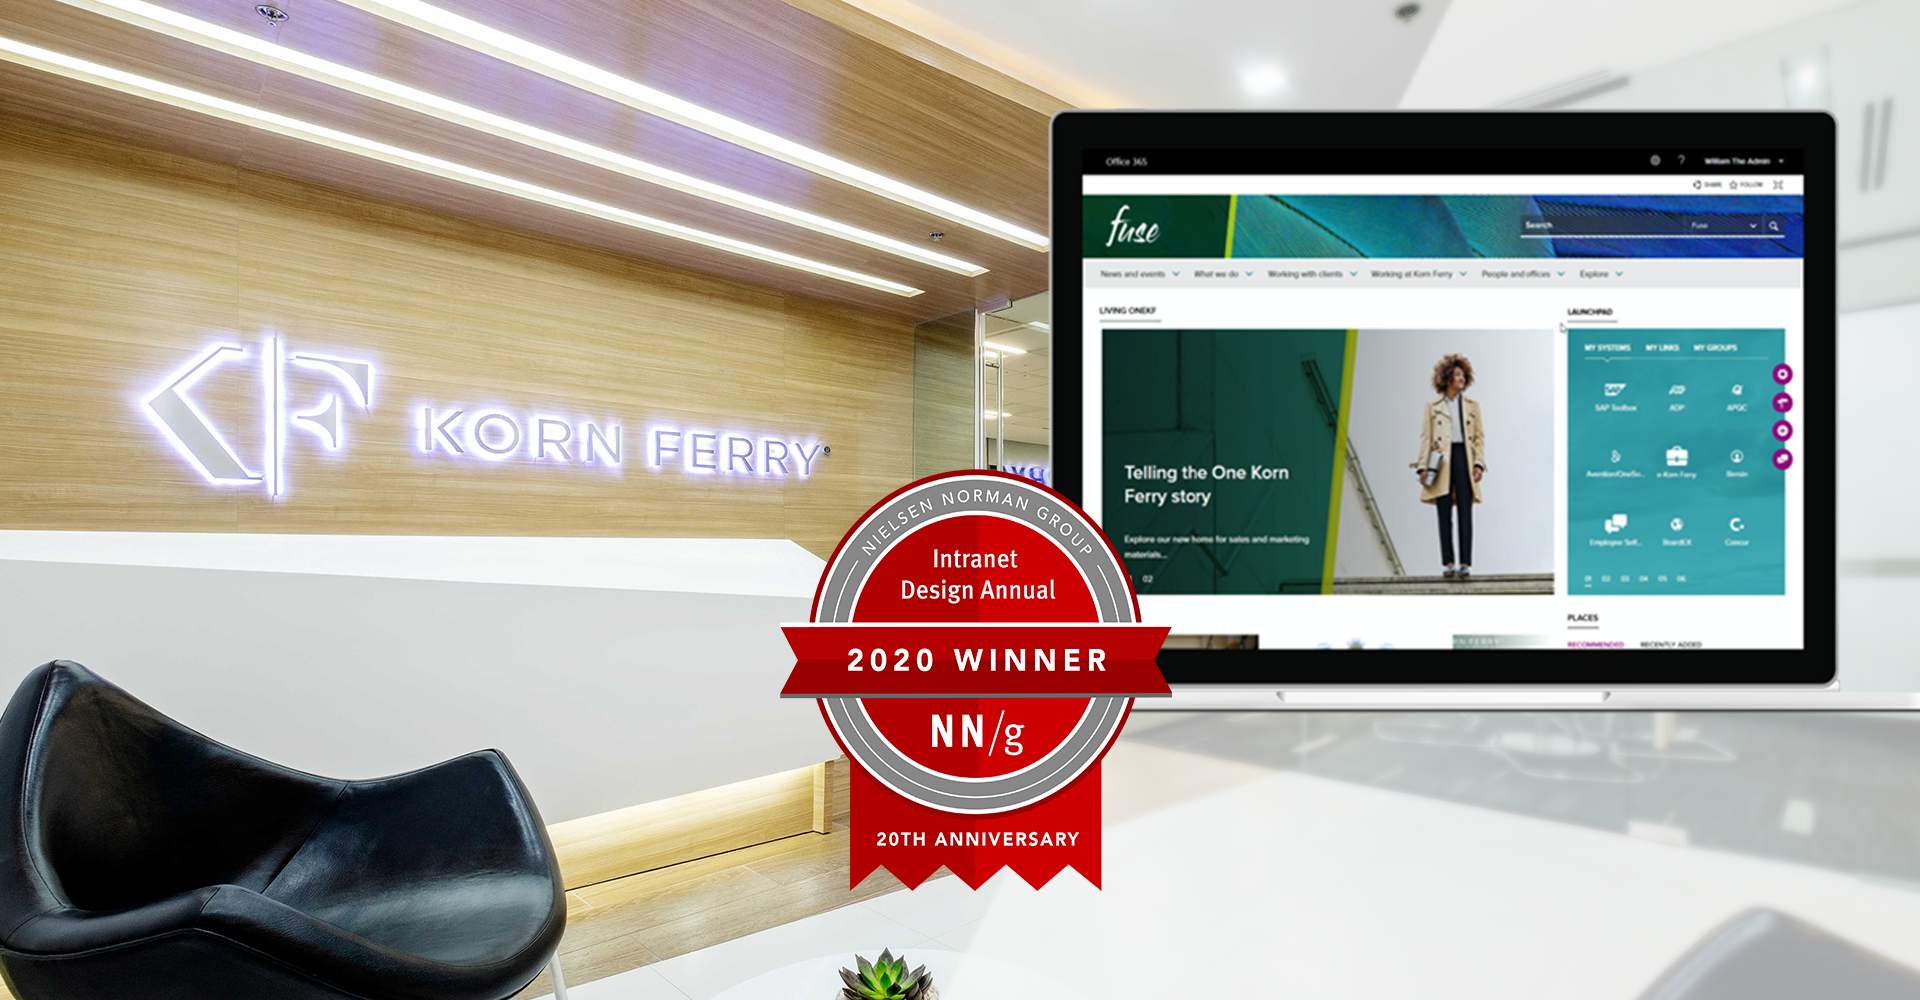 Korn Ferry office with NNG Intranet Design Annual Award overlay